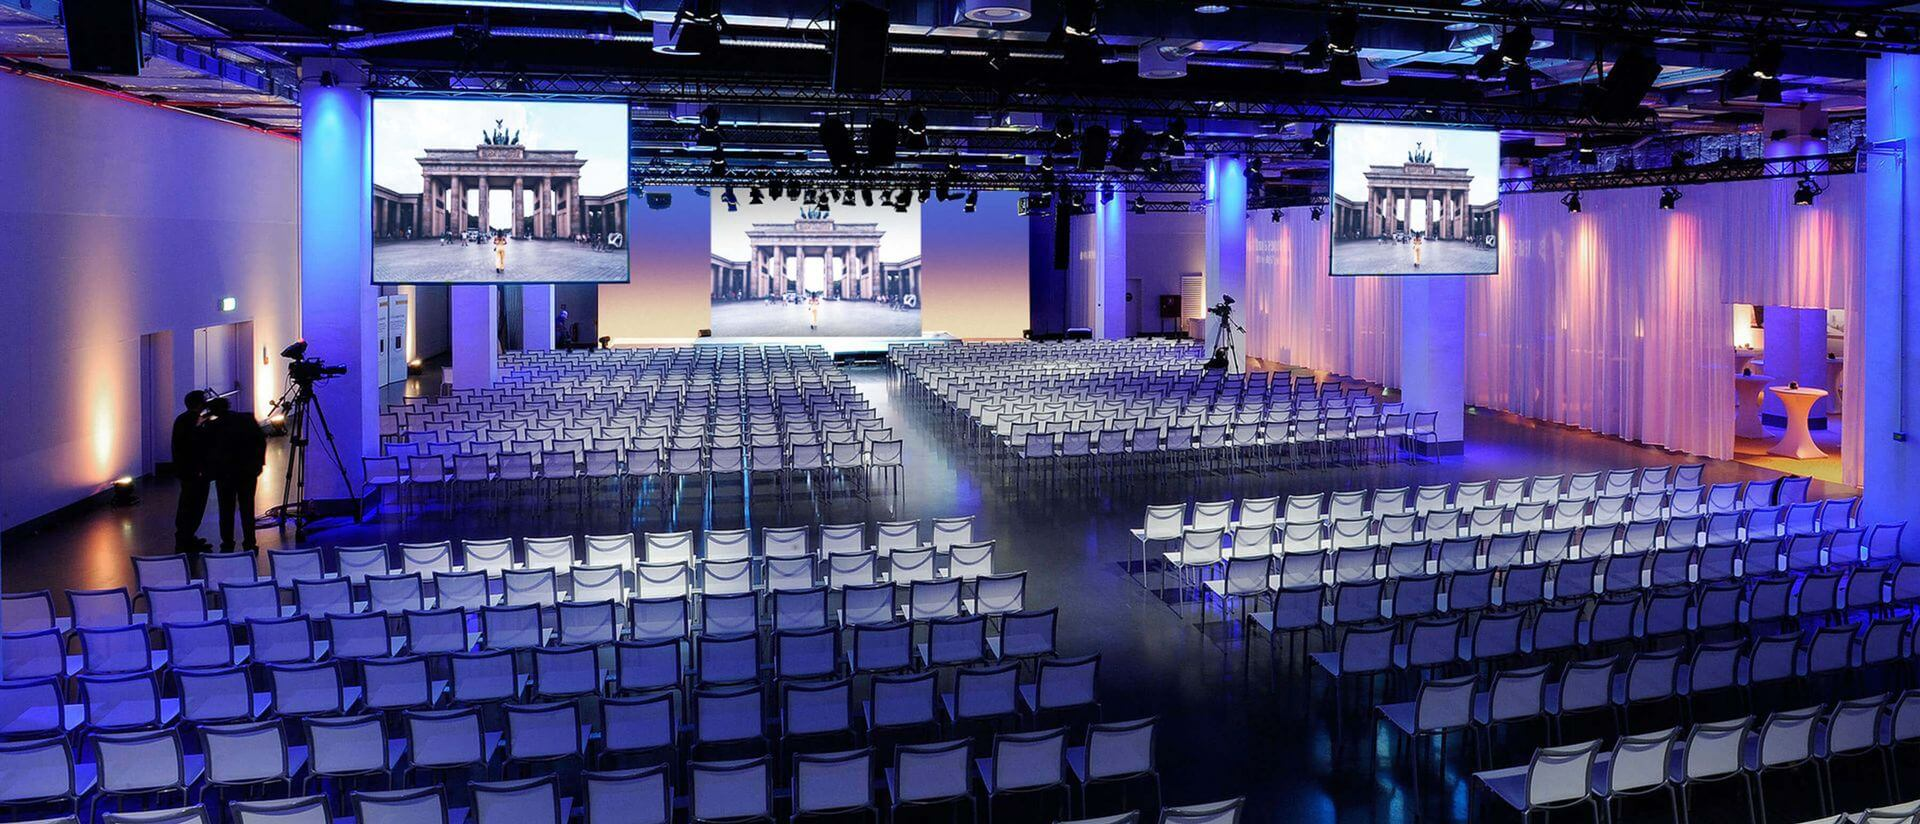 reef berlin event area with blue lighting and set seating with a screen